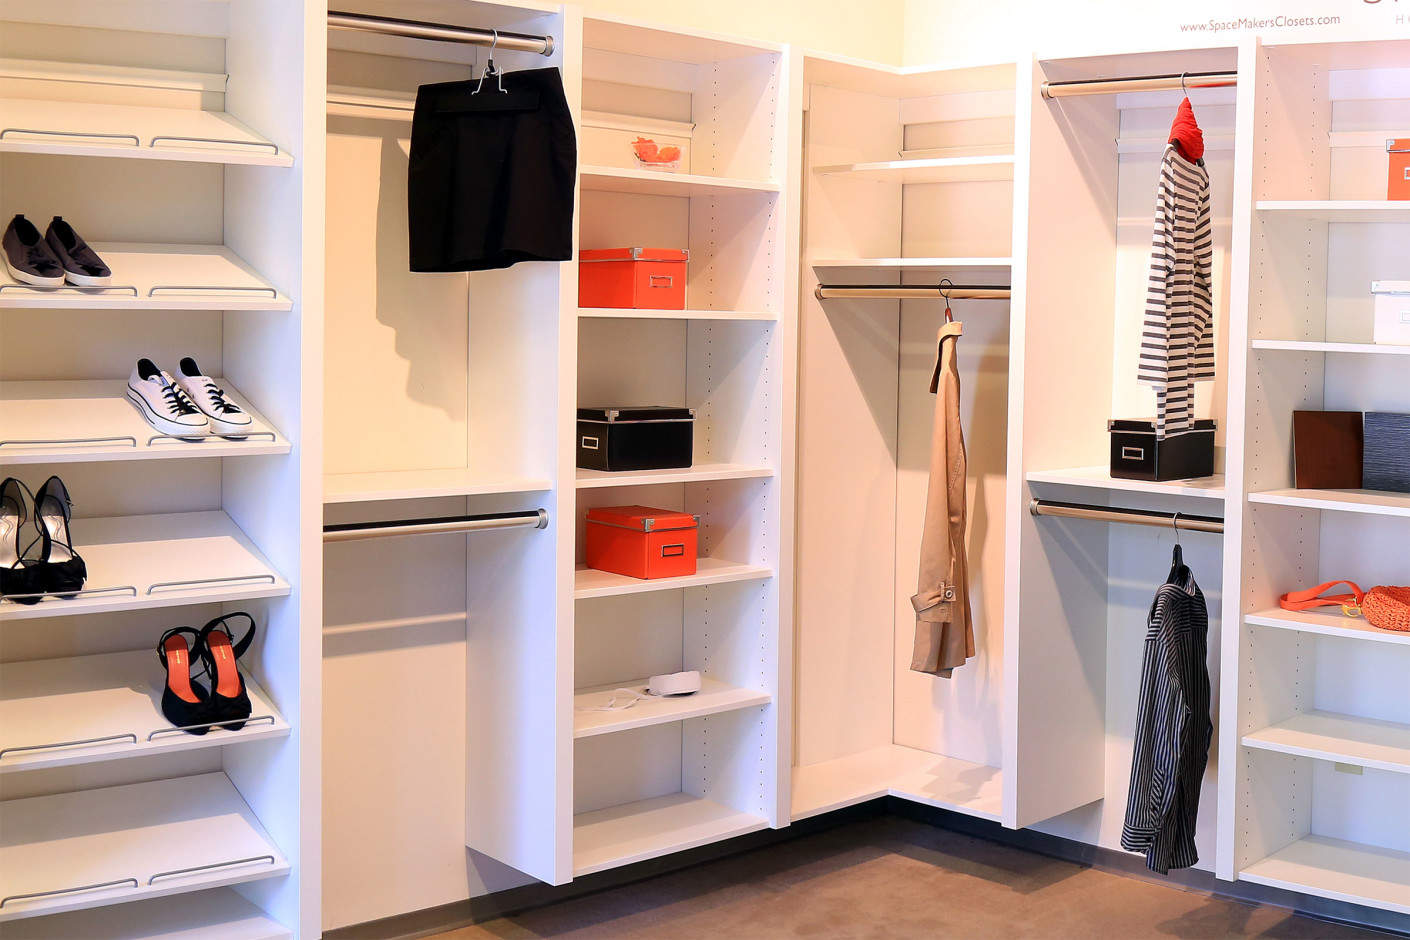 Excellent Atlanta Custom Closets Spacemakers Custom Closets With How To  Build Your Own Closet System.